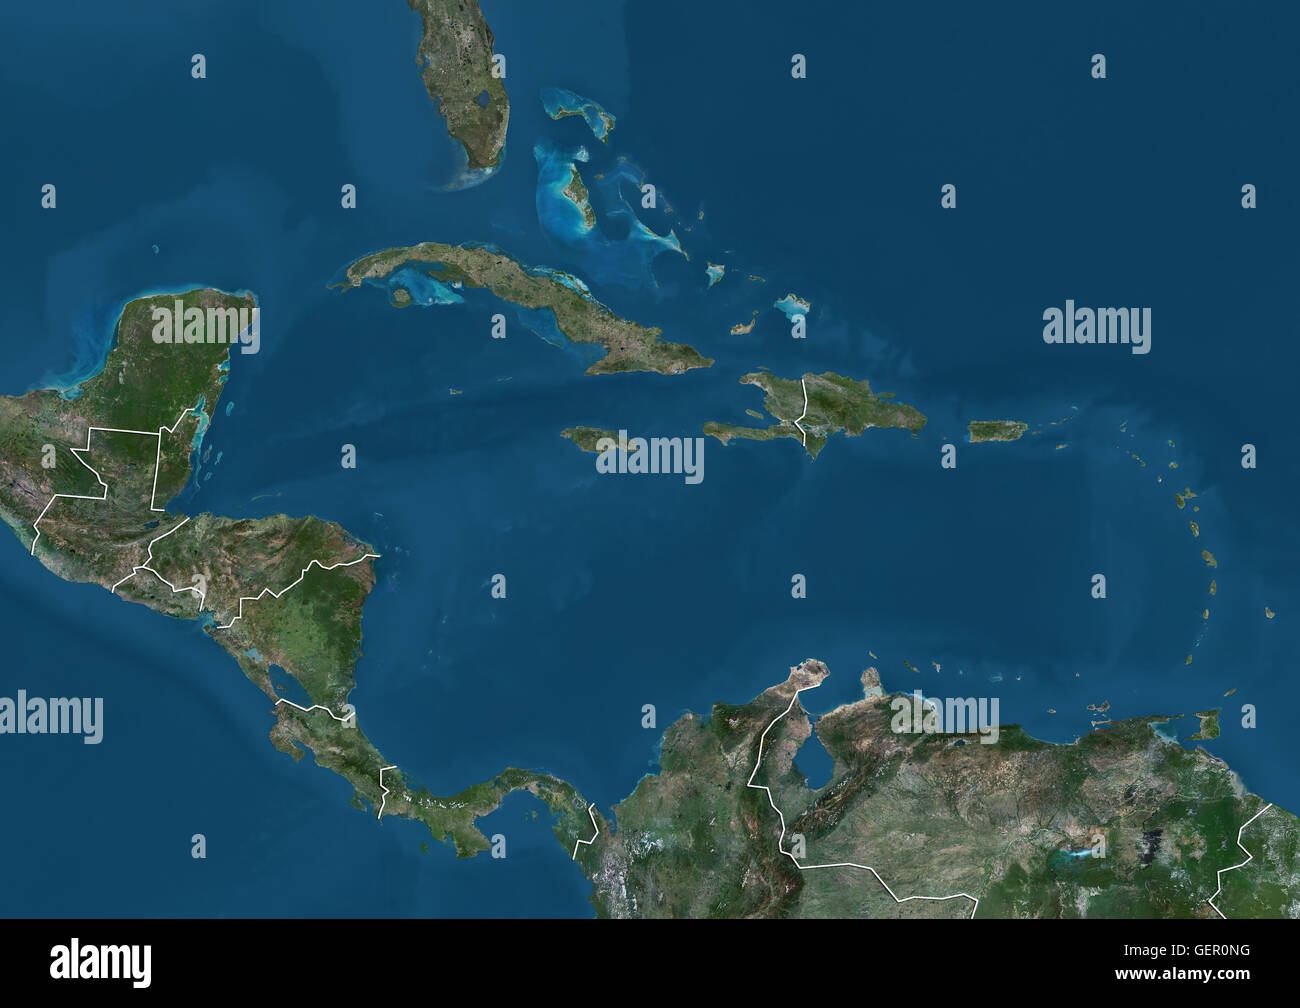 Satellite view of Central America and the Caribbean (with ... on intellicast caribbean, outline map of the caribbean, us and caribbean, winds of the caribbean, america map of the caribbean, show map of the caribbean, relief map of the caribbean, weather large maps caribbean, waterways of the caribbean, sports of the caribbean, map of south caribbean, full map of caribbean, the map of the caribbean, temperature map of the caribbean, printable map caribbean, home of the caribbean, google maps of the caribbean, attractions of the caribbean, labeled map of the caribbean, political map of the caribbean,